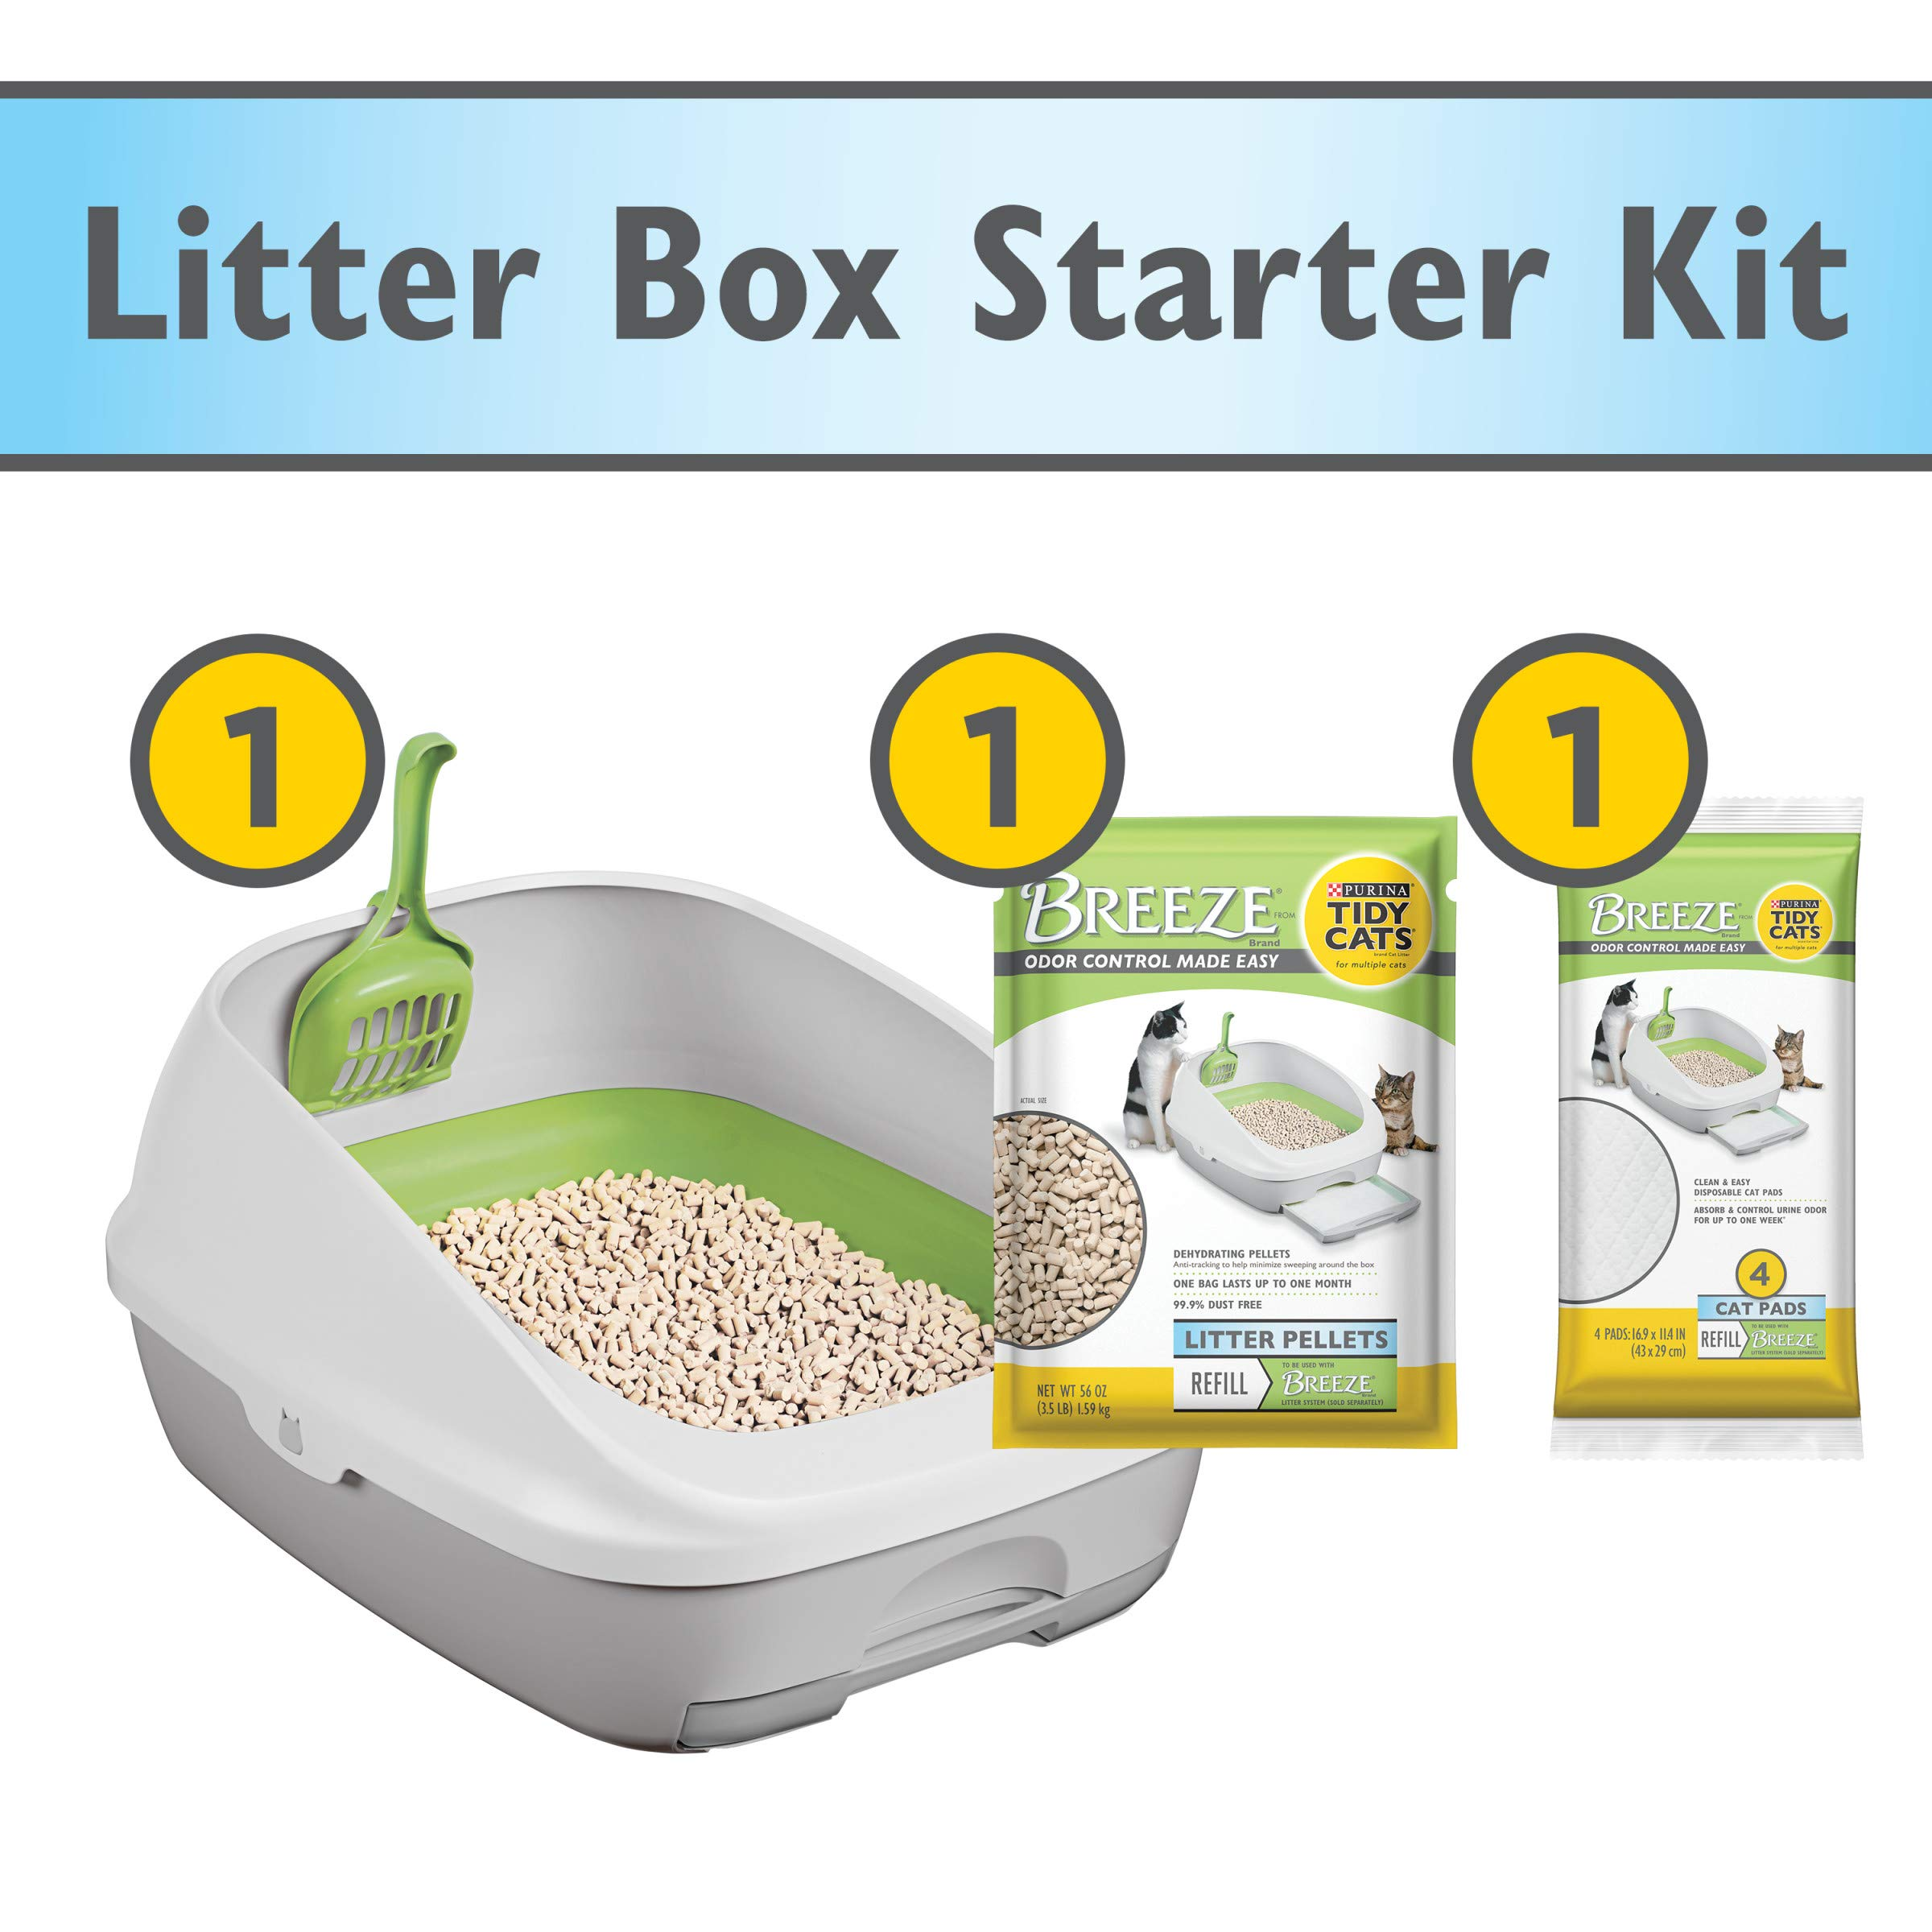 Purina Tidy Cats Litter Box System, BREEZE System Starter Kit Litter Box, Litter Pellets & Pads by Purina Tidy Cats